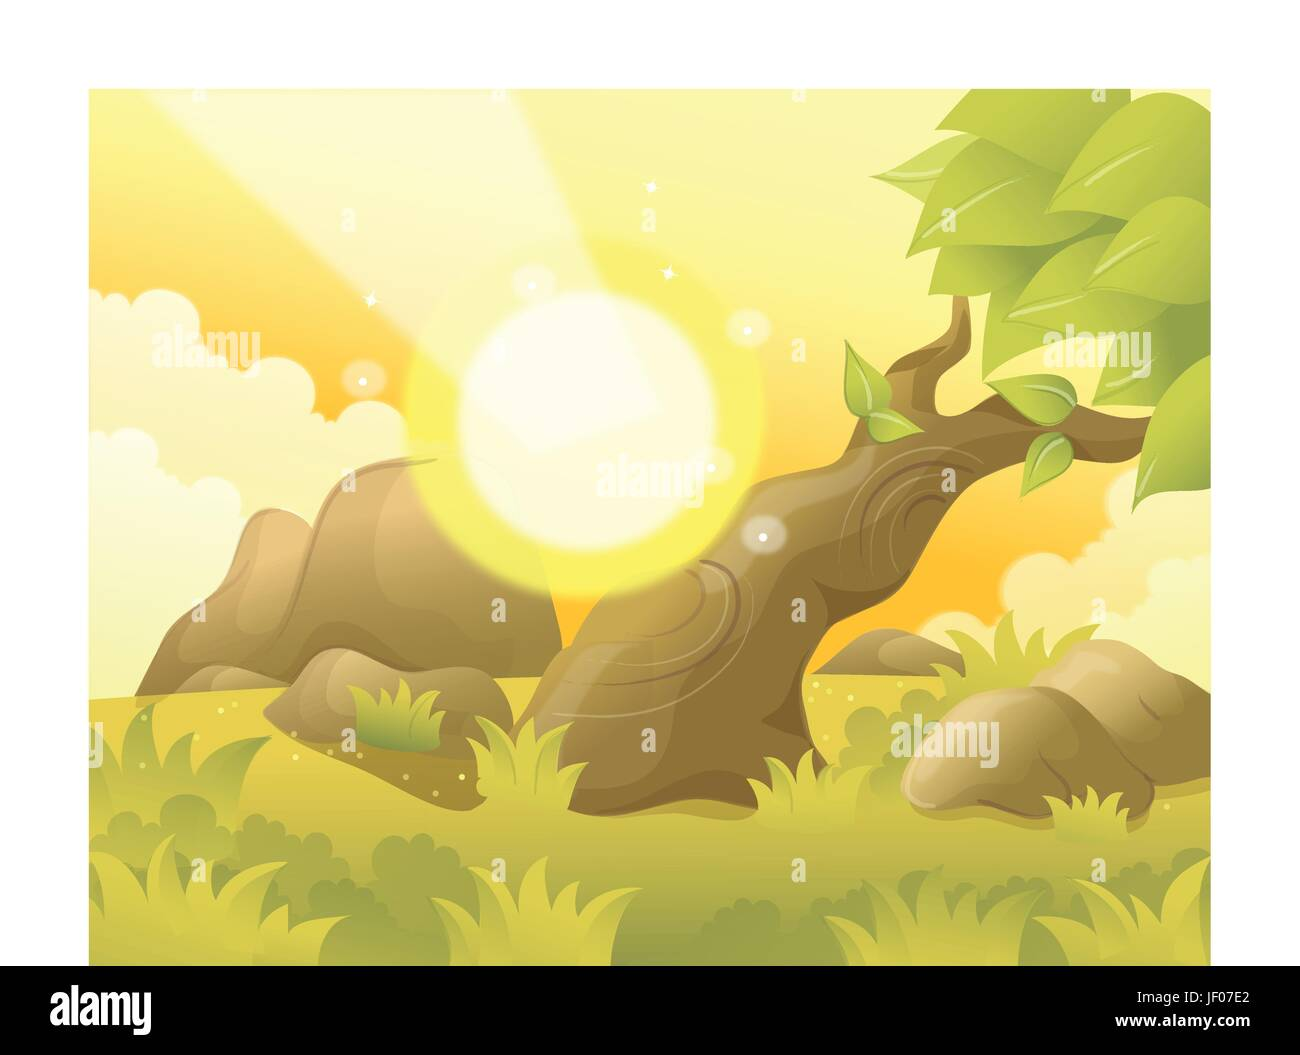 leaf, tree, stone, summer, summerly, sunlight, rock, illustration, square, - Stock Vector